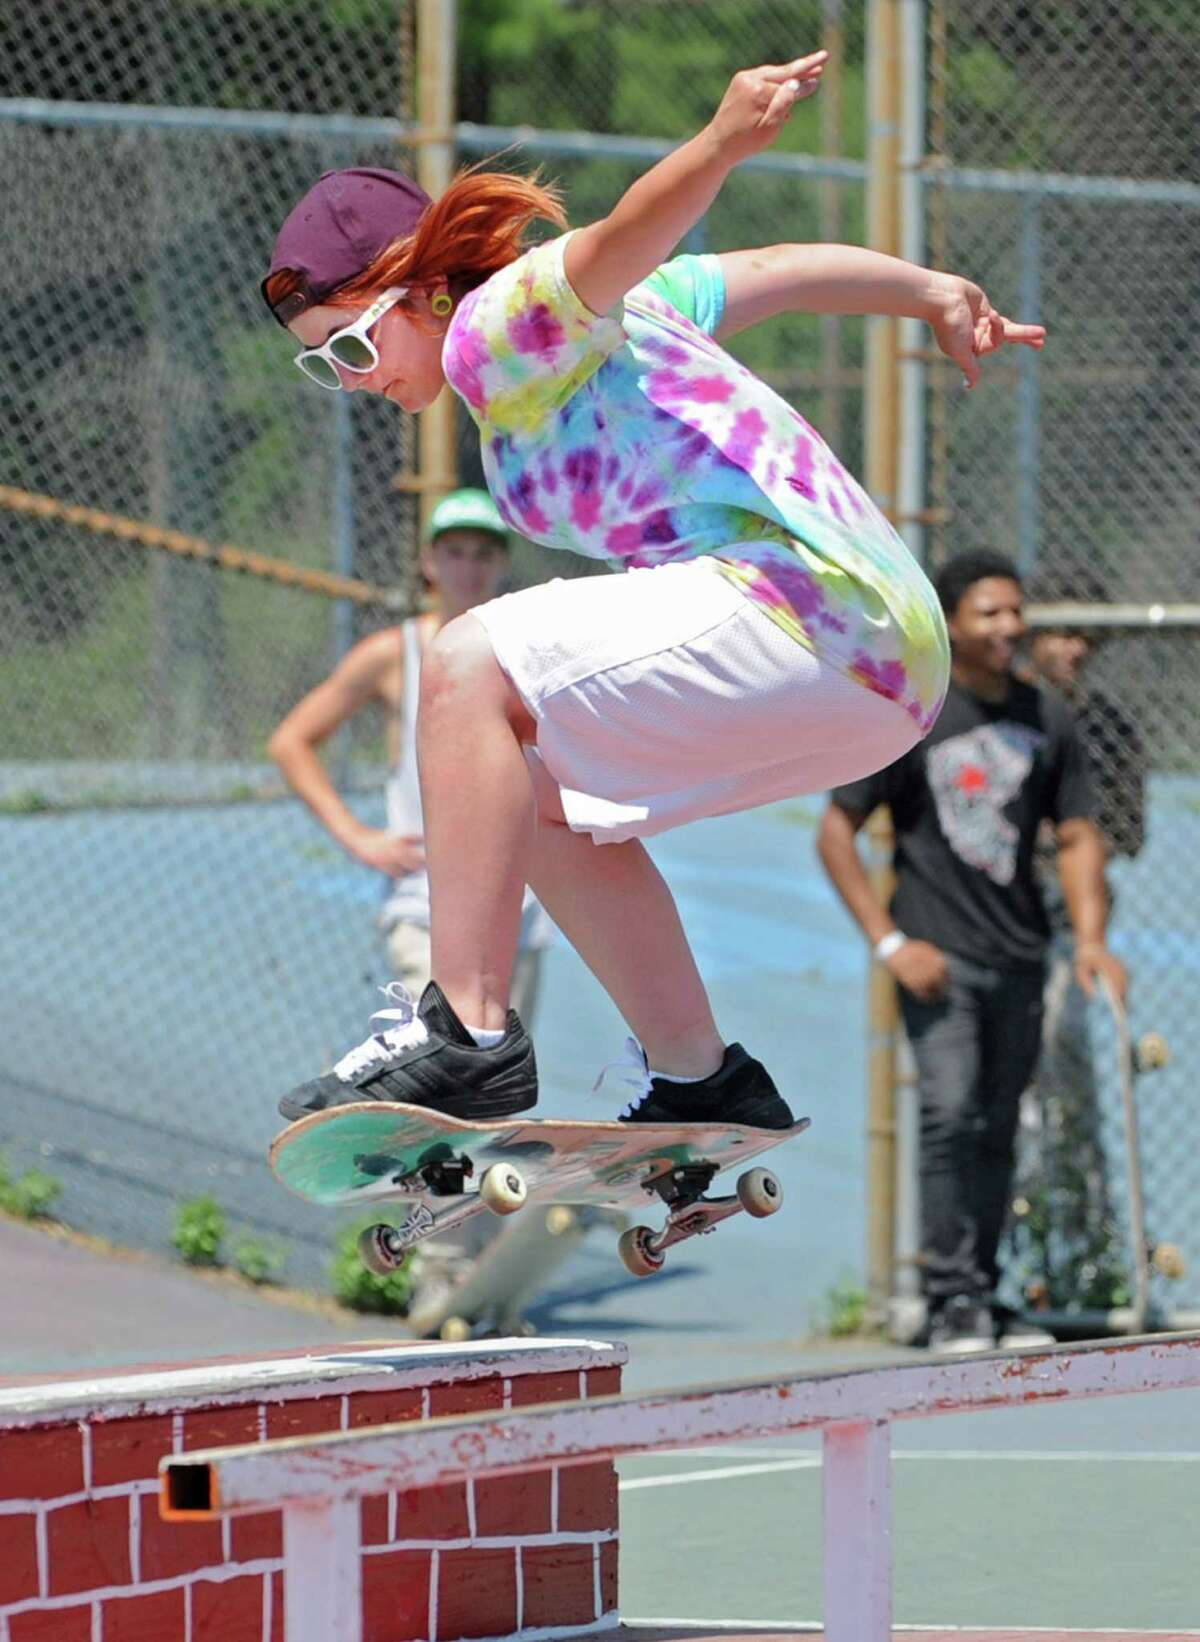 Victoria Vigliotti, 18, of Schenectady performs a trick on a skateboard over a rail during a contest in Washington Park Thursday, June 21, 2012 in Albany, N.Y. Thursday was national skateboard day. (Lori Van Buren / Times Union)